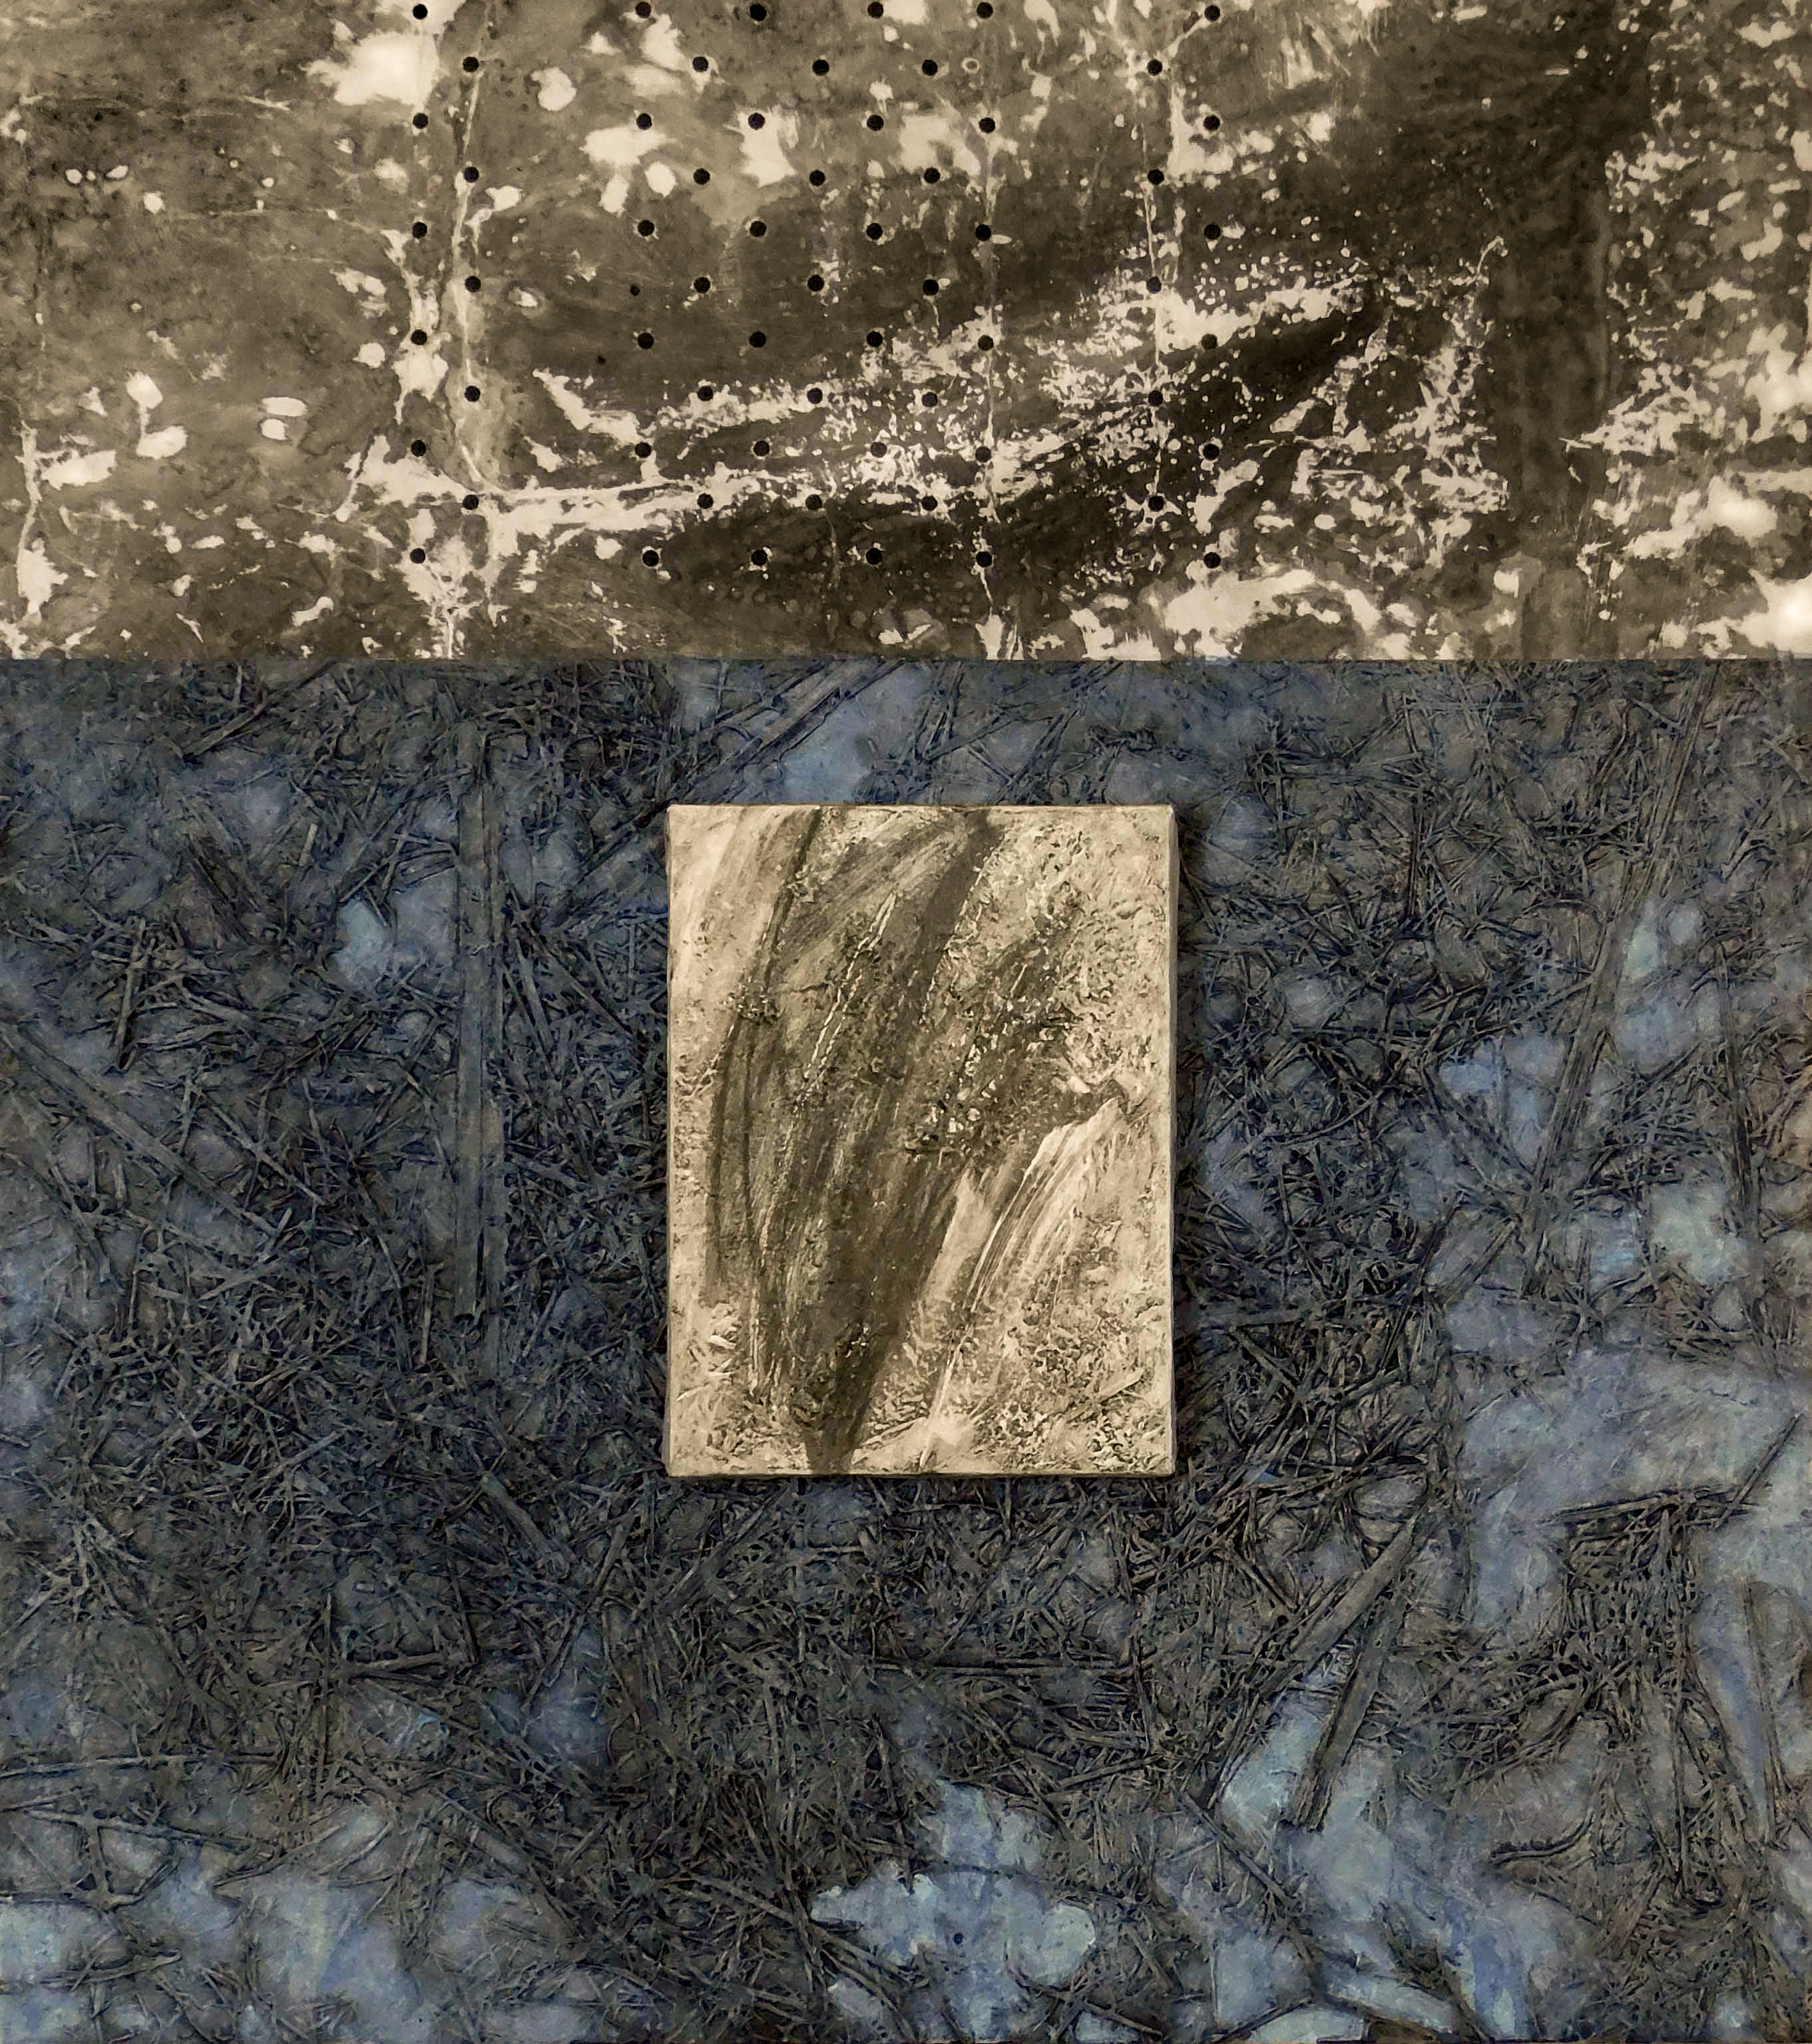 textured abstract art in blue and grey colors